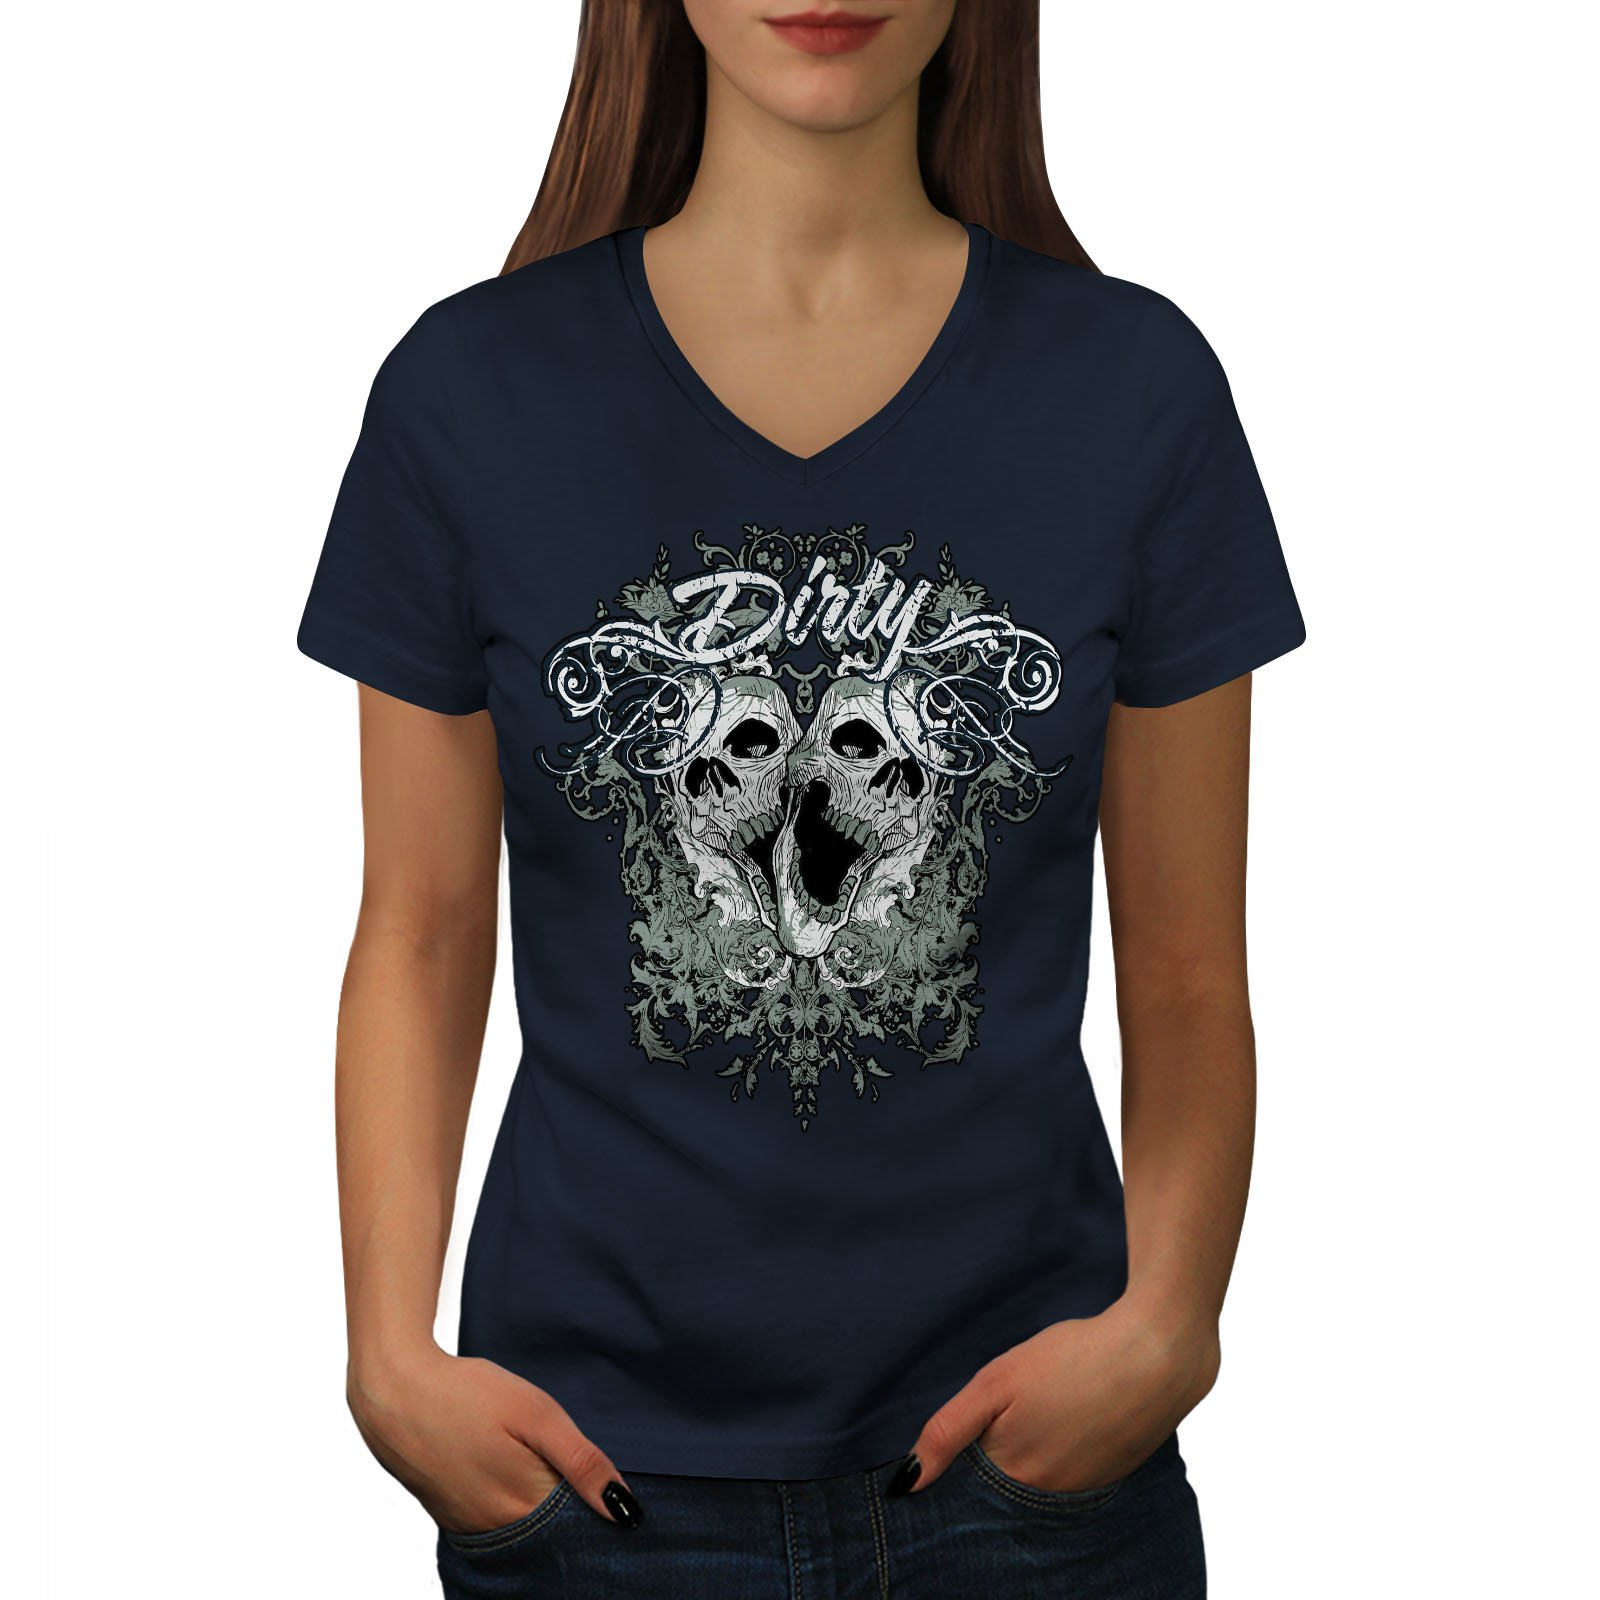 wellcoda Dirty Metal Goth Skull Womens V-Neck T-Shirt, Dead Casual Design Tee Navy M by wellcoda